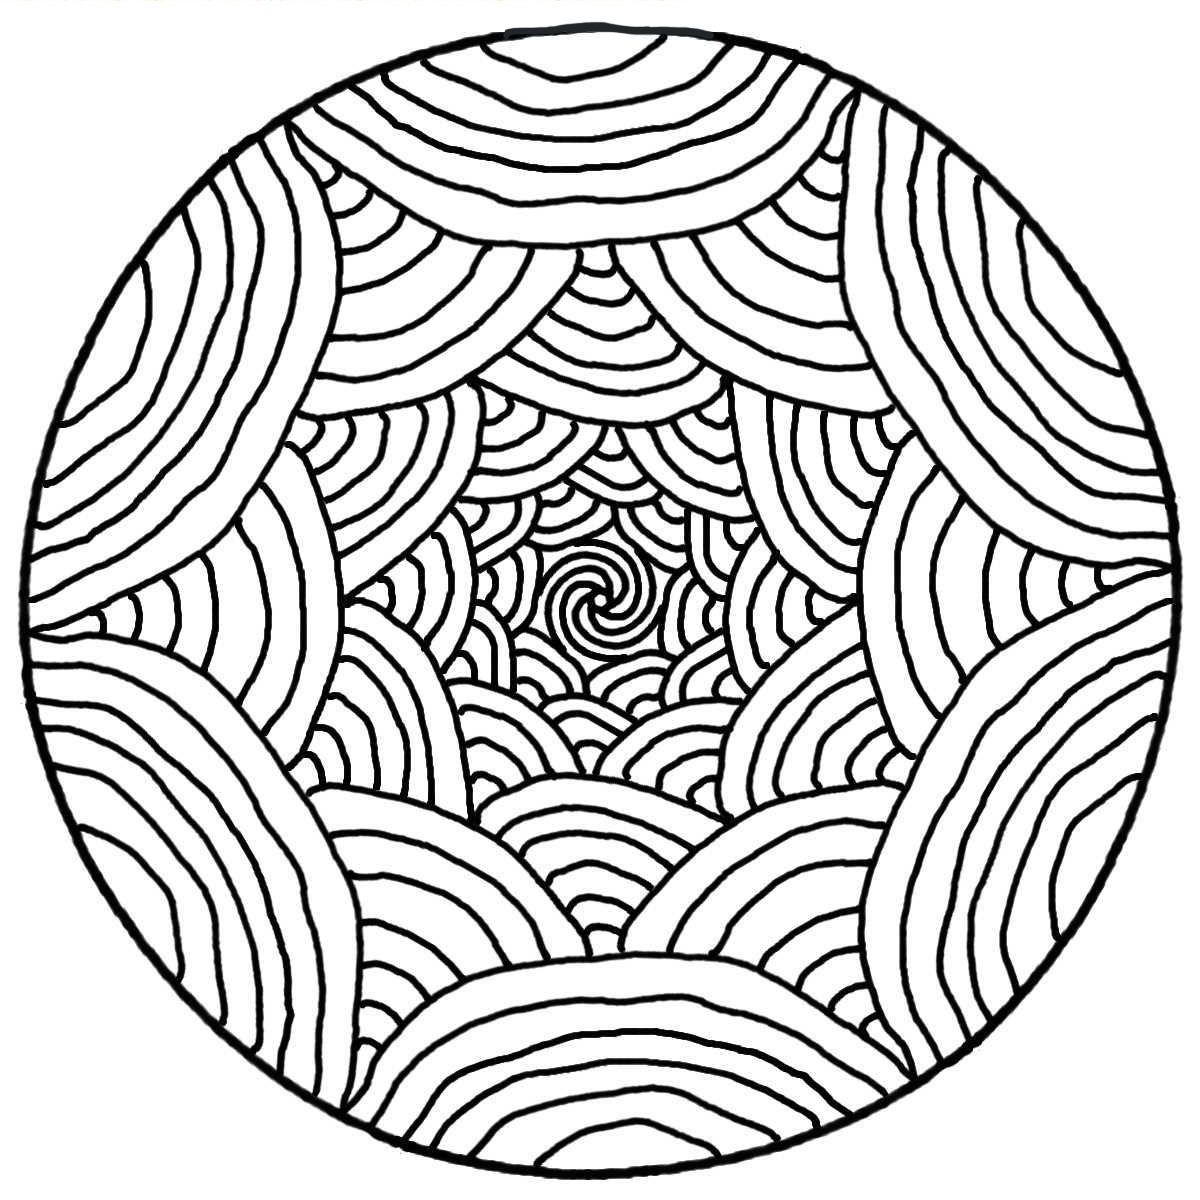 Rainbow Coloring Pages For Adults Easy To Color Seni Warna Garis